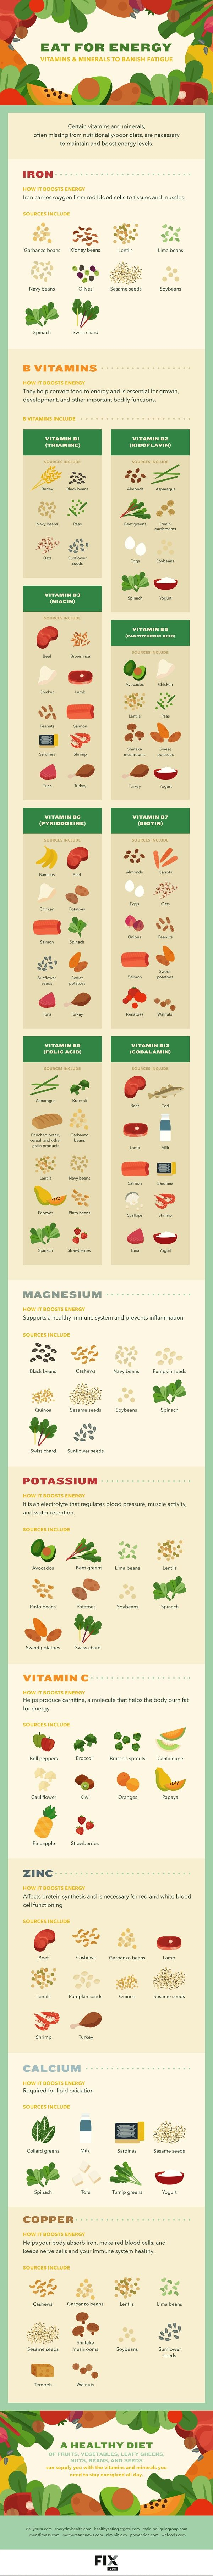 Infographic: Vitamins And Minerals That Your Body Needs To Banish Fatigue - DesignTAXI.com